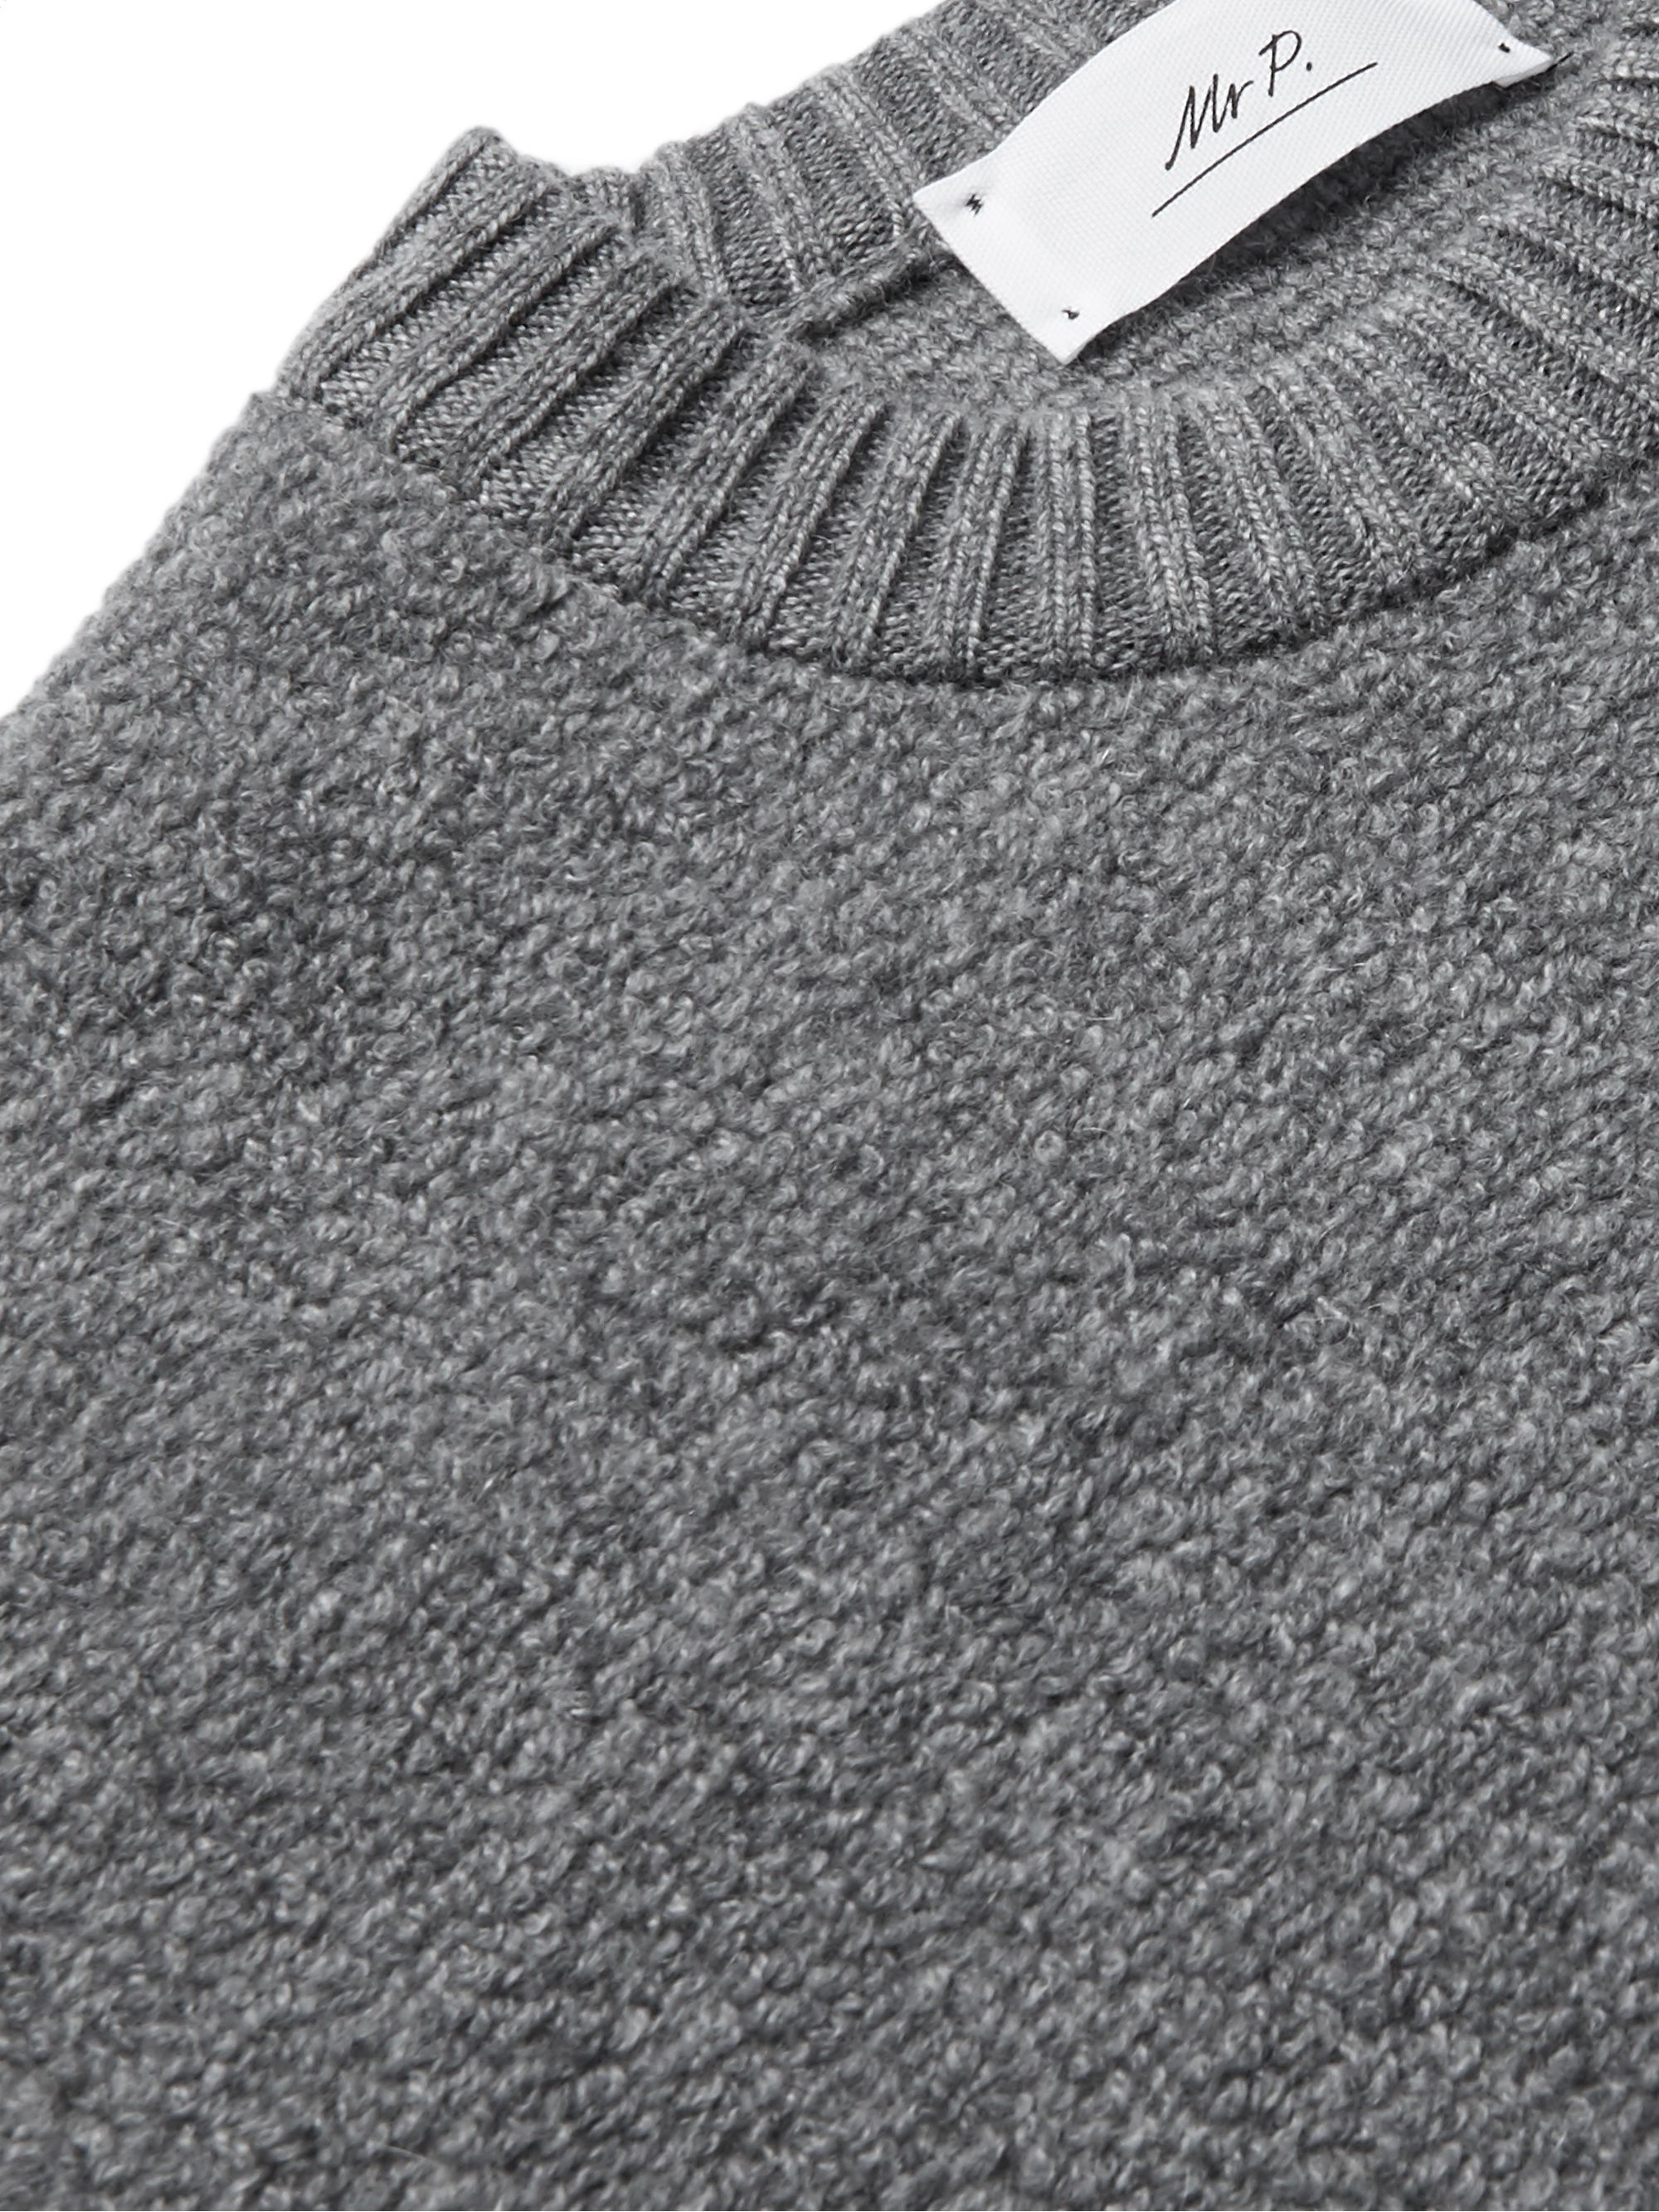 Mr P. Cashmere Sweater